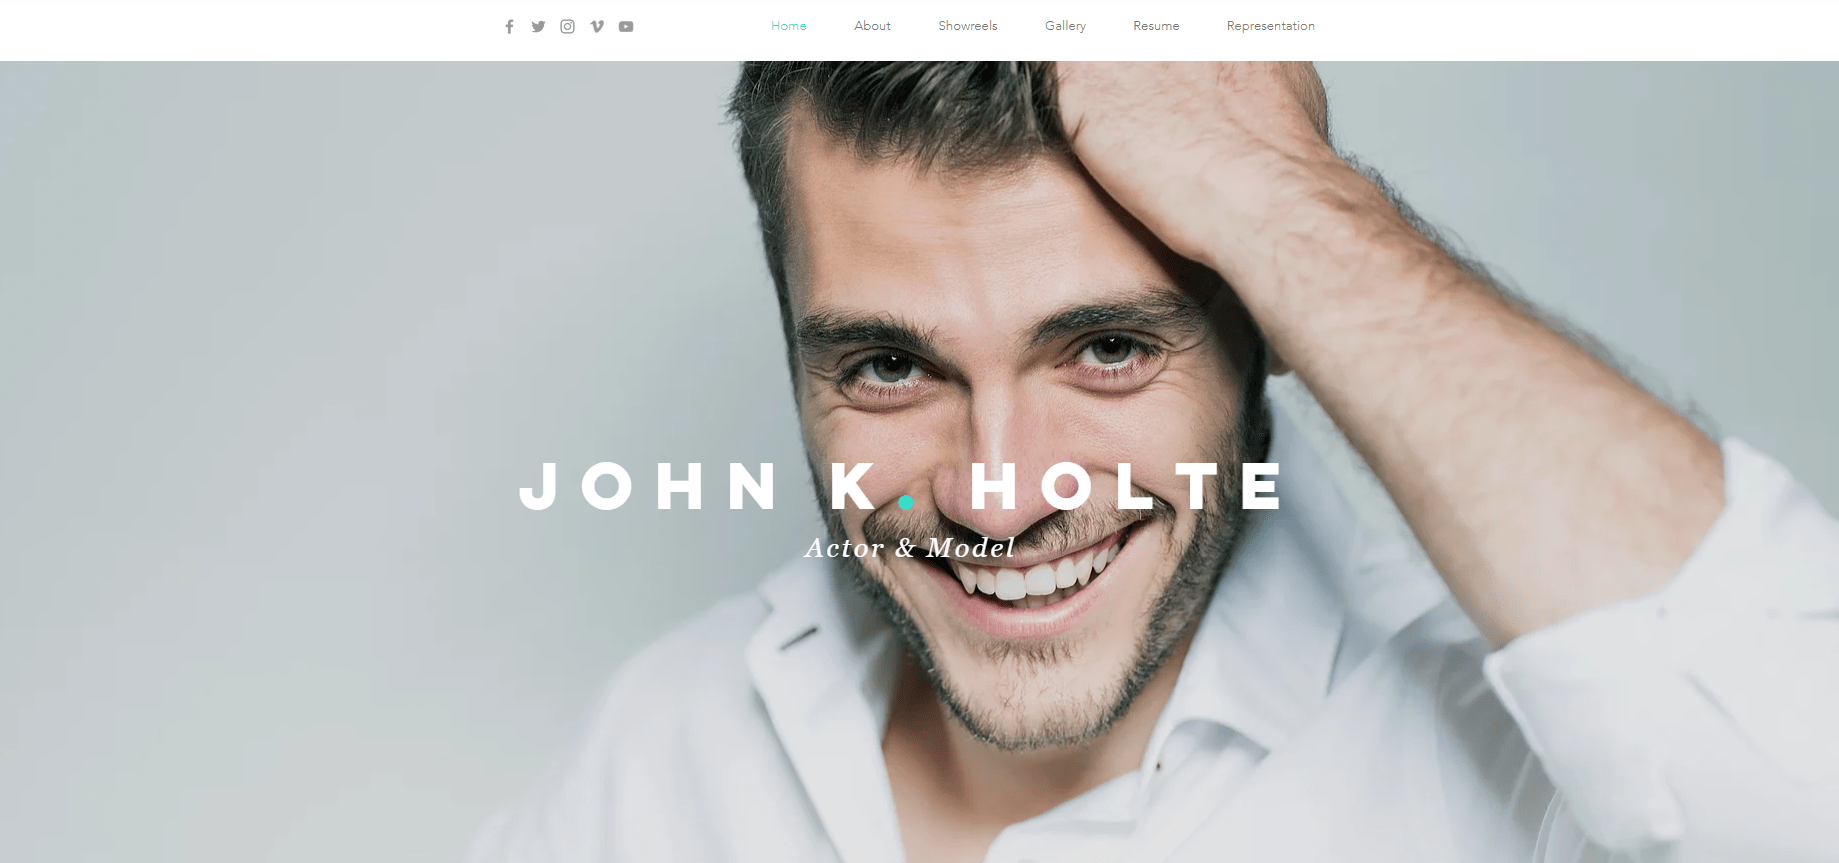 10 Best Wix Templates for Your Portfolio and Resume Website